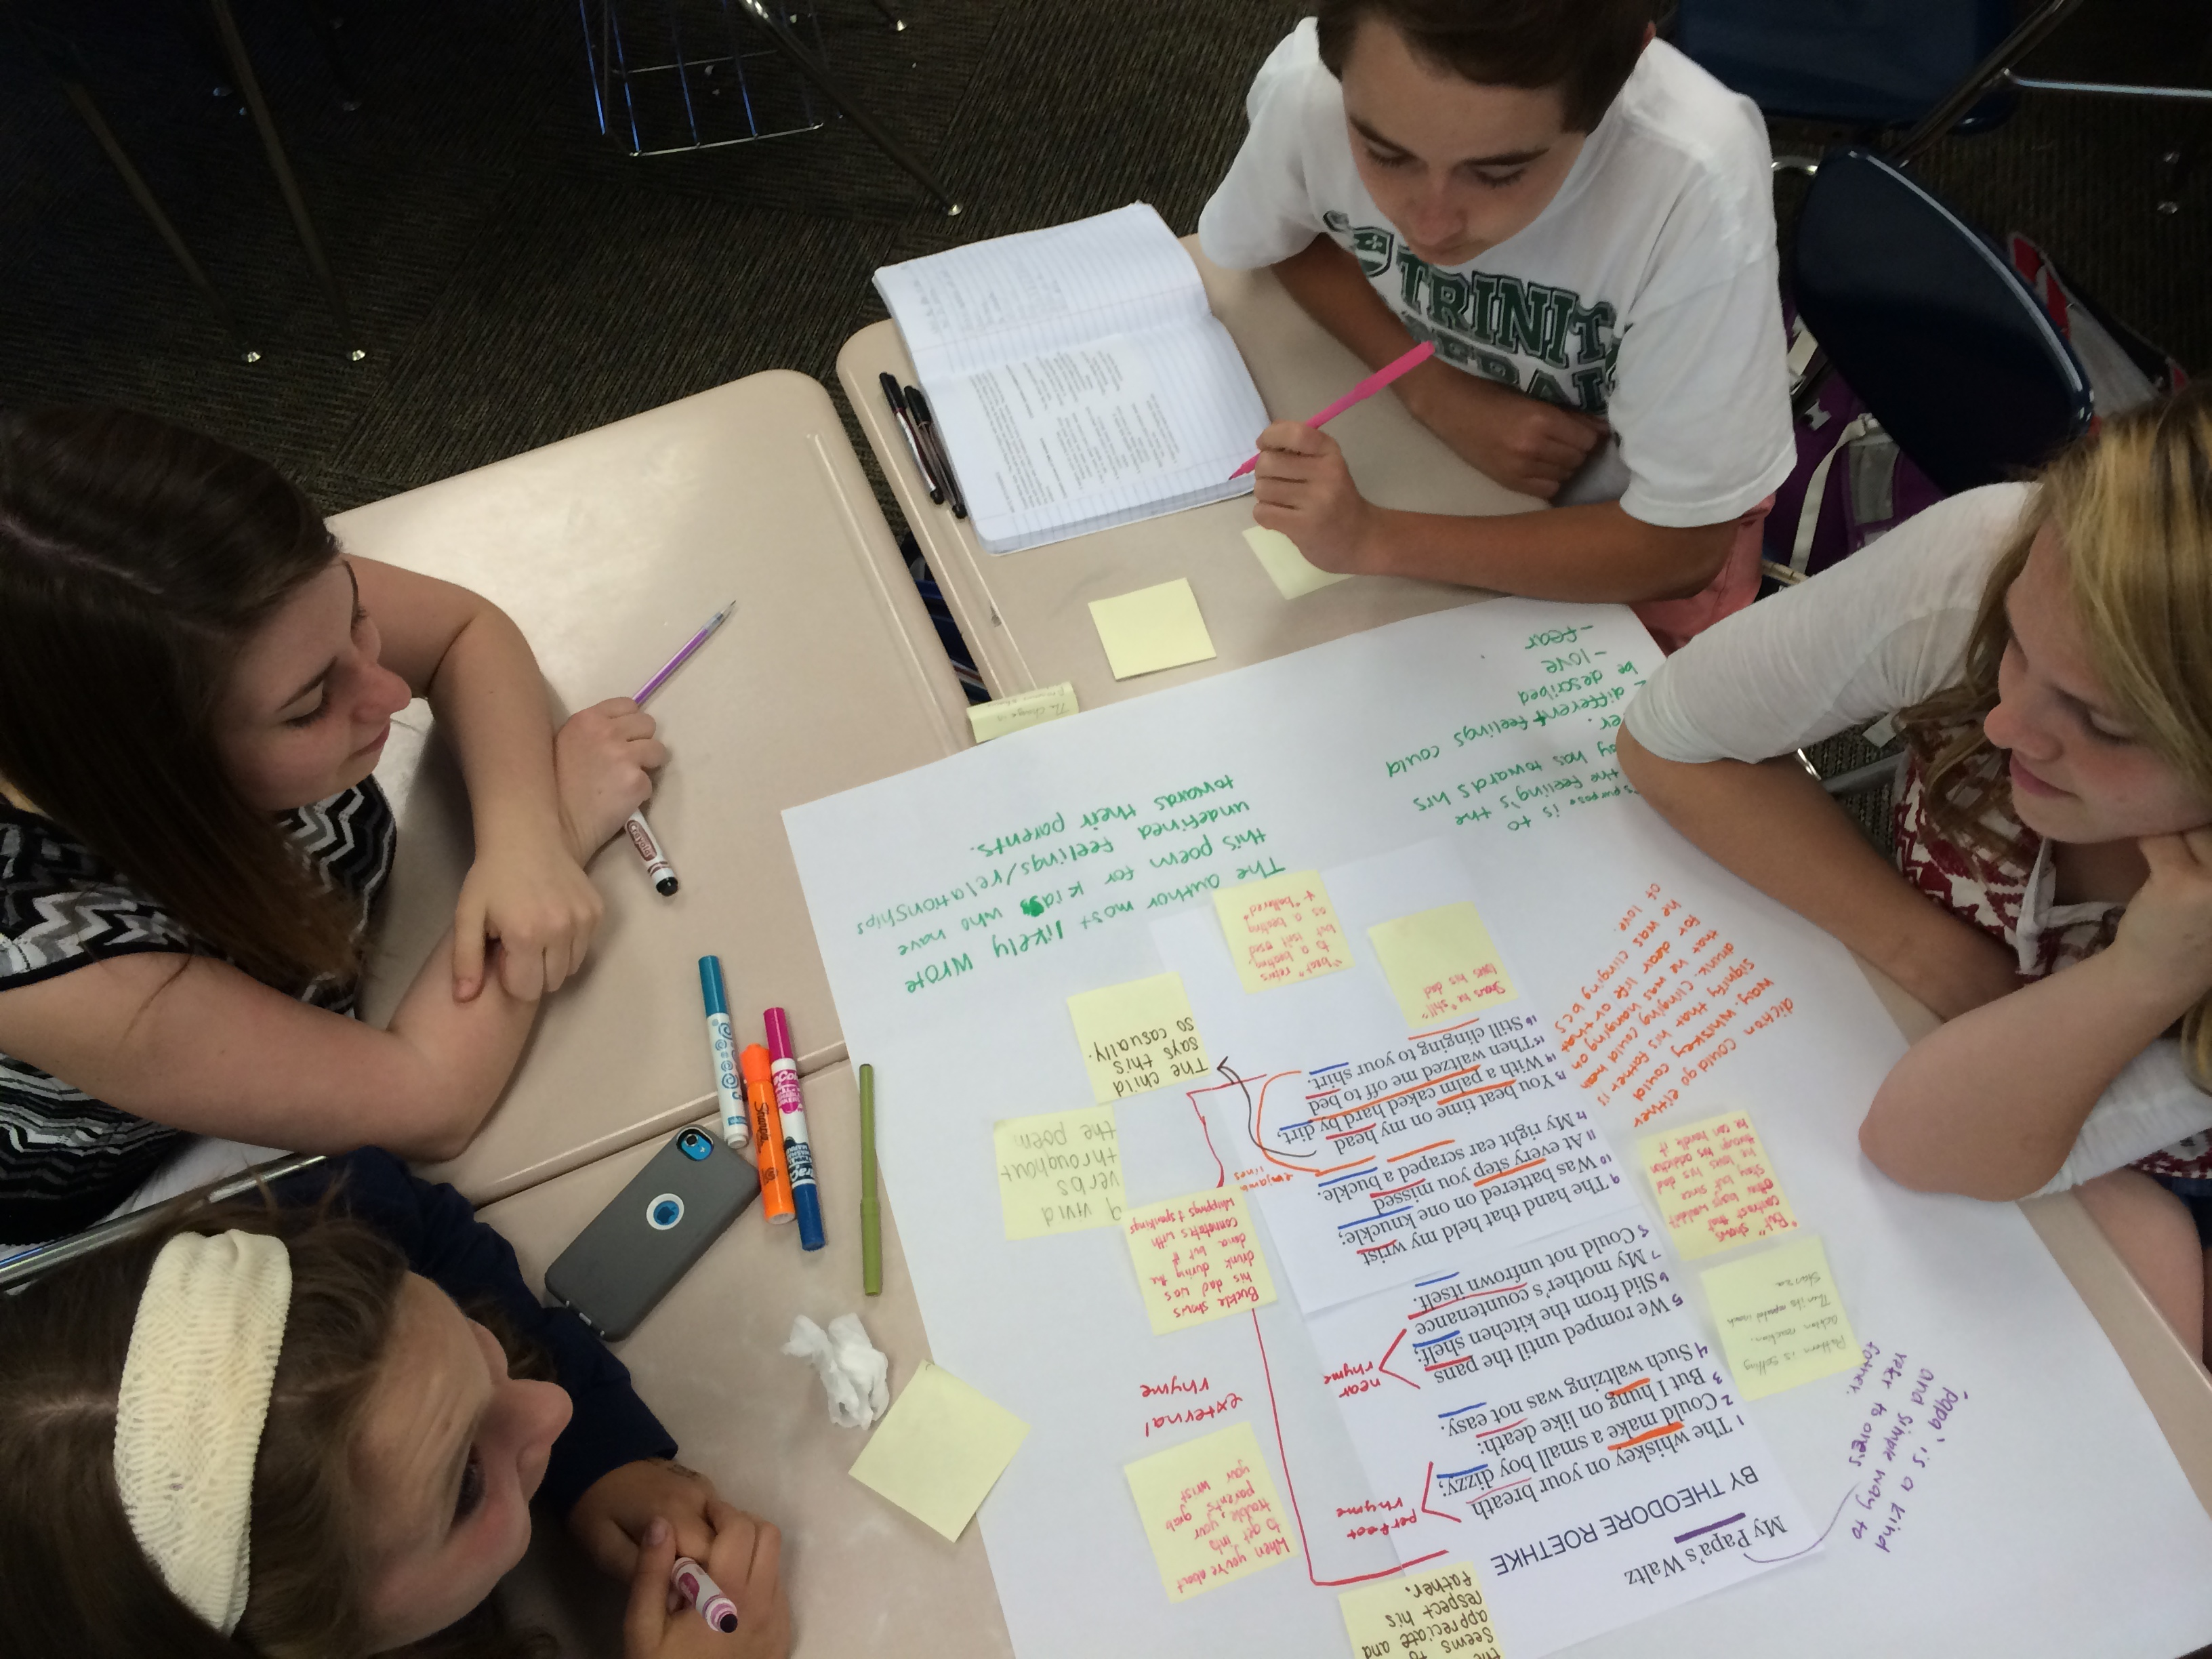 Structural elements of an essay